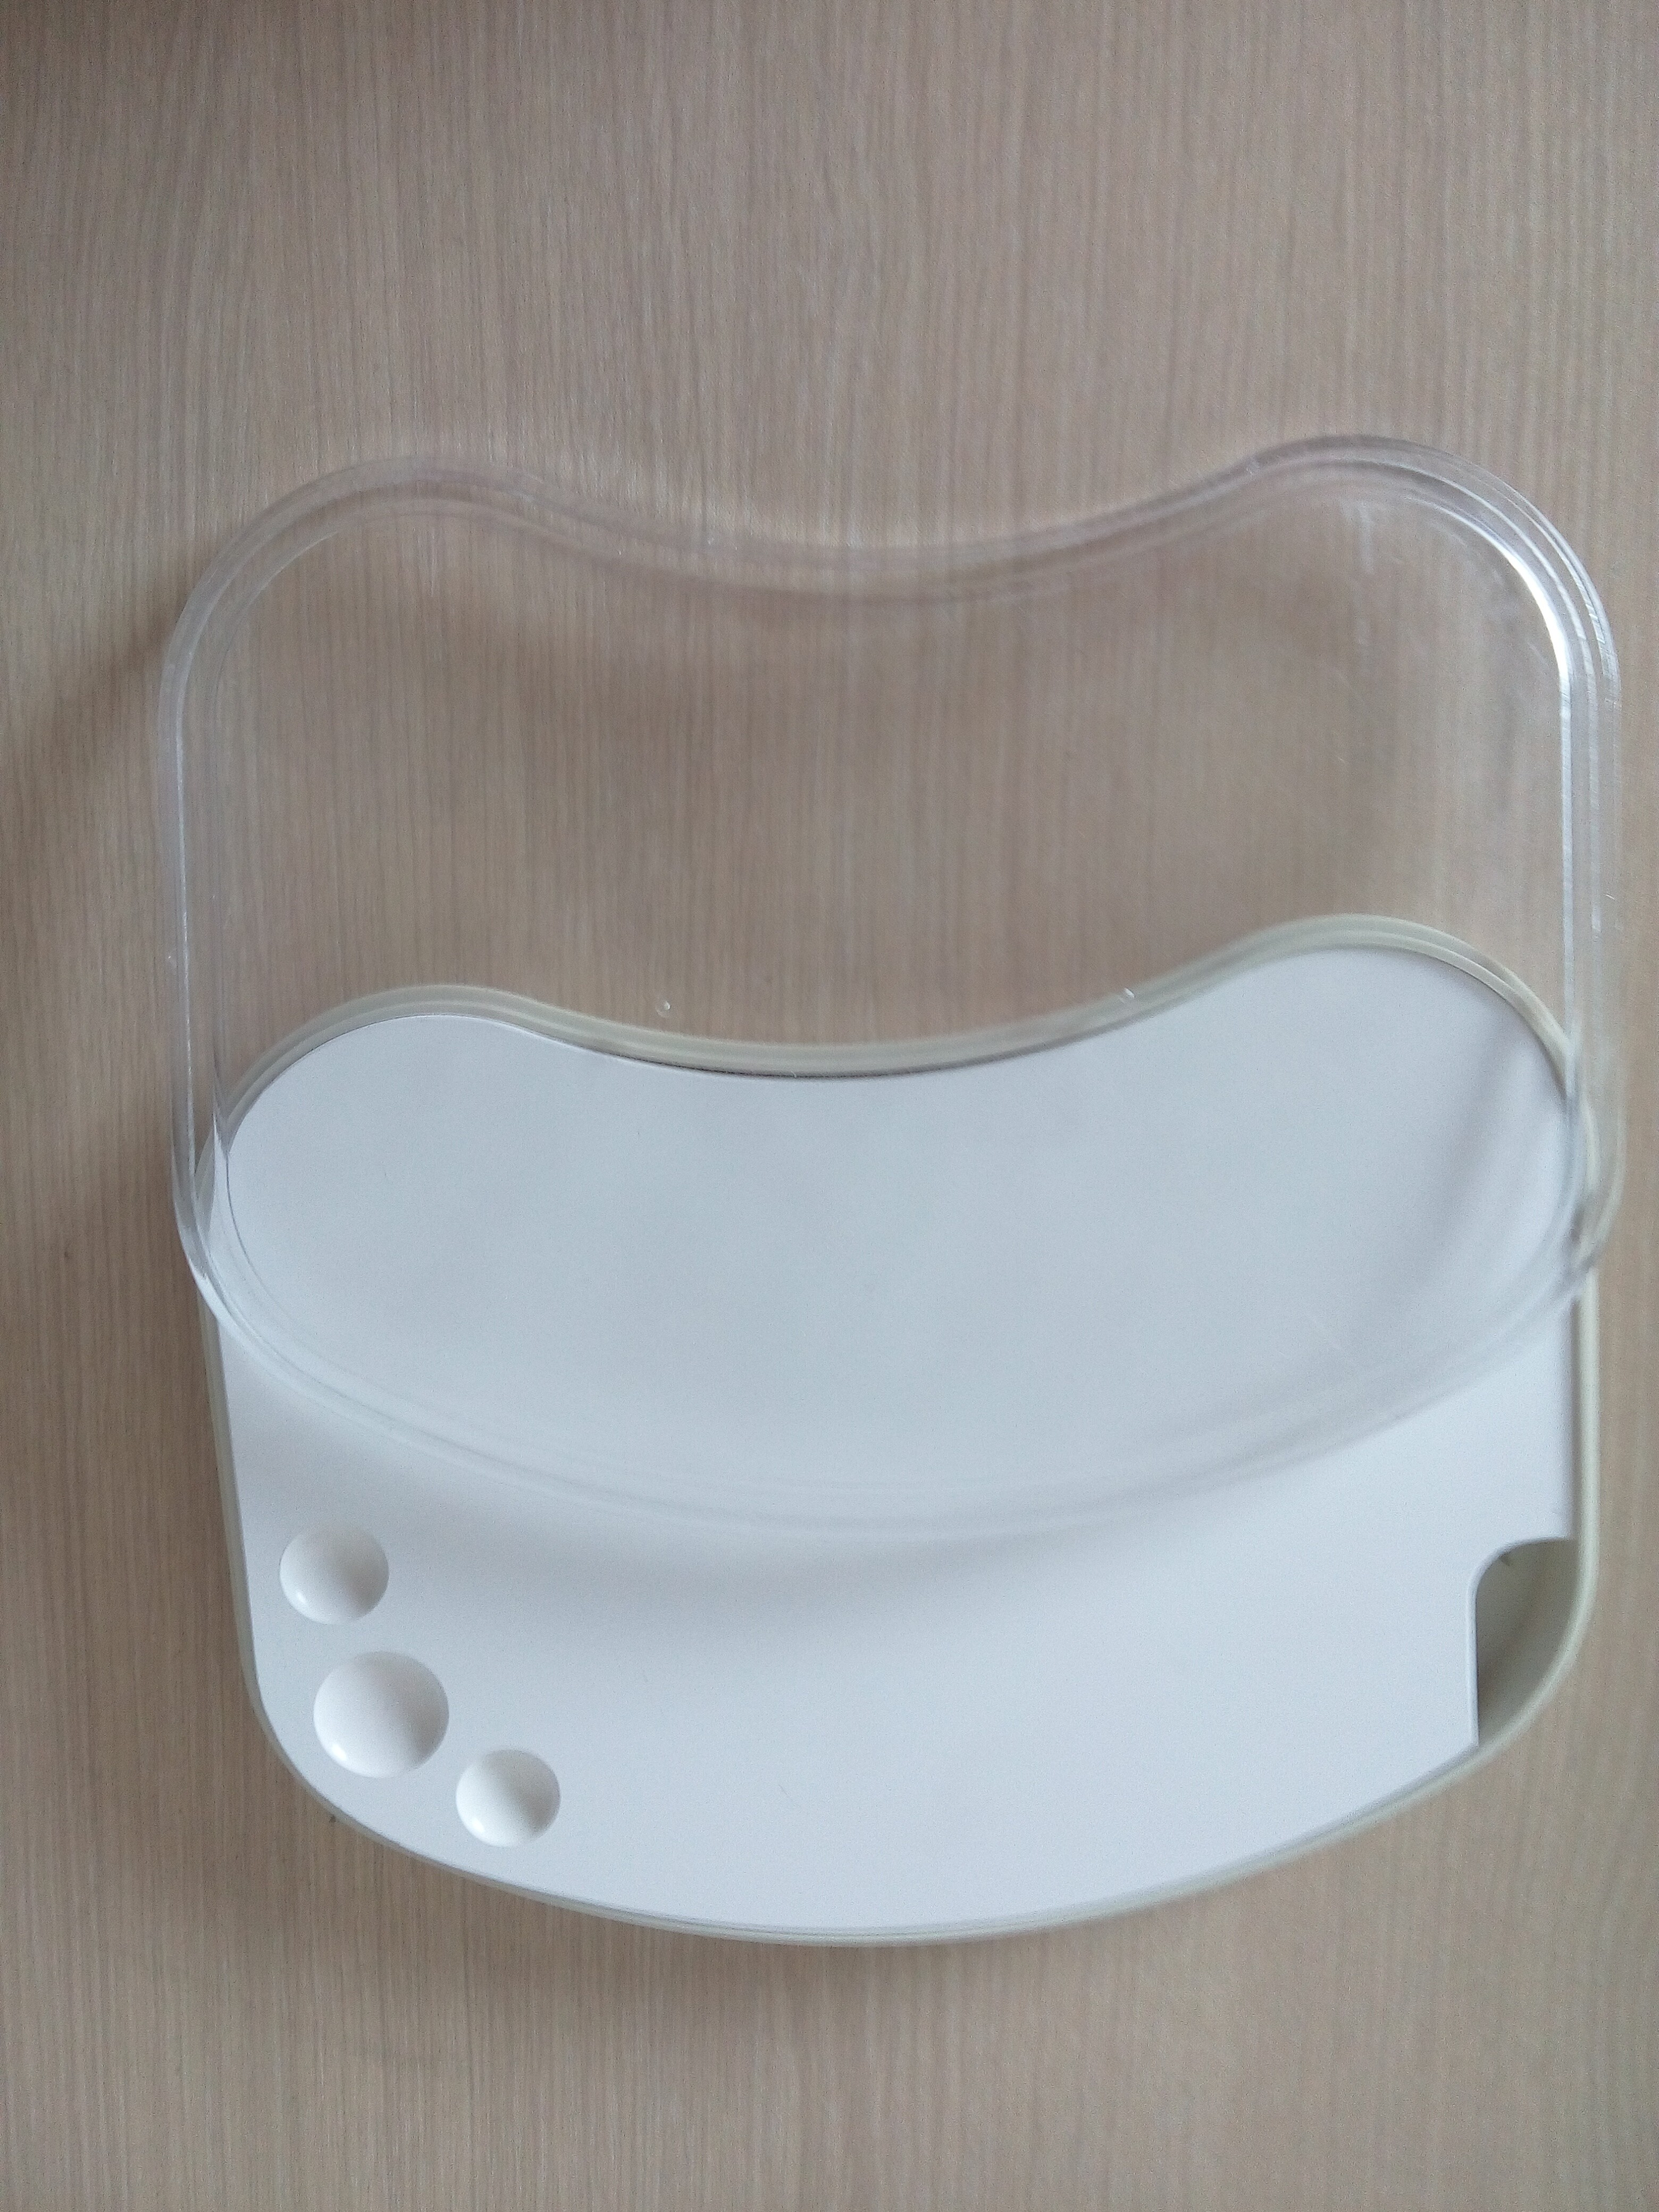 Porcelain Watering Plate, Large, with Cover